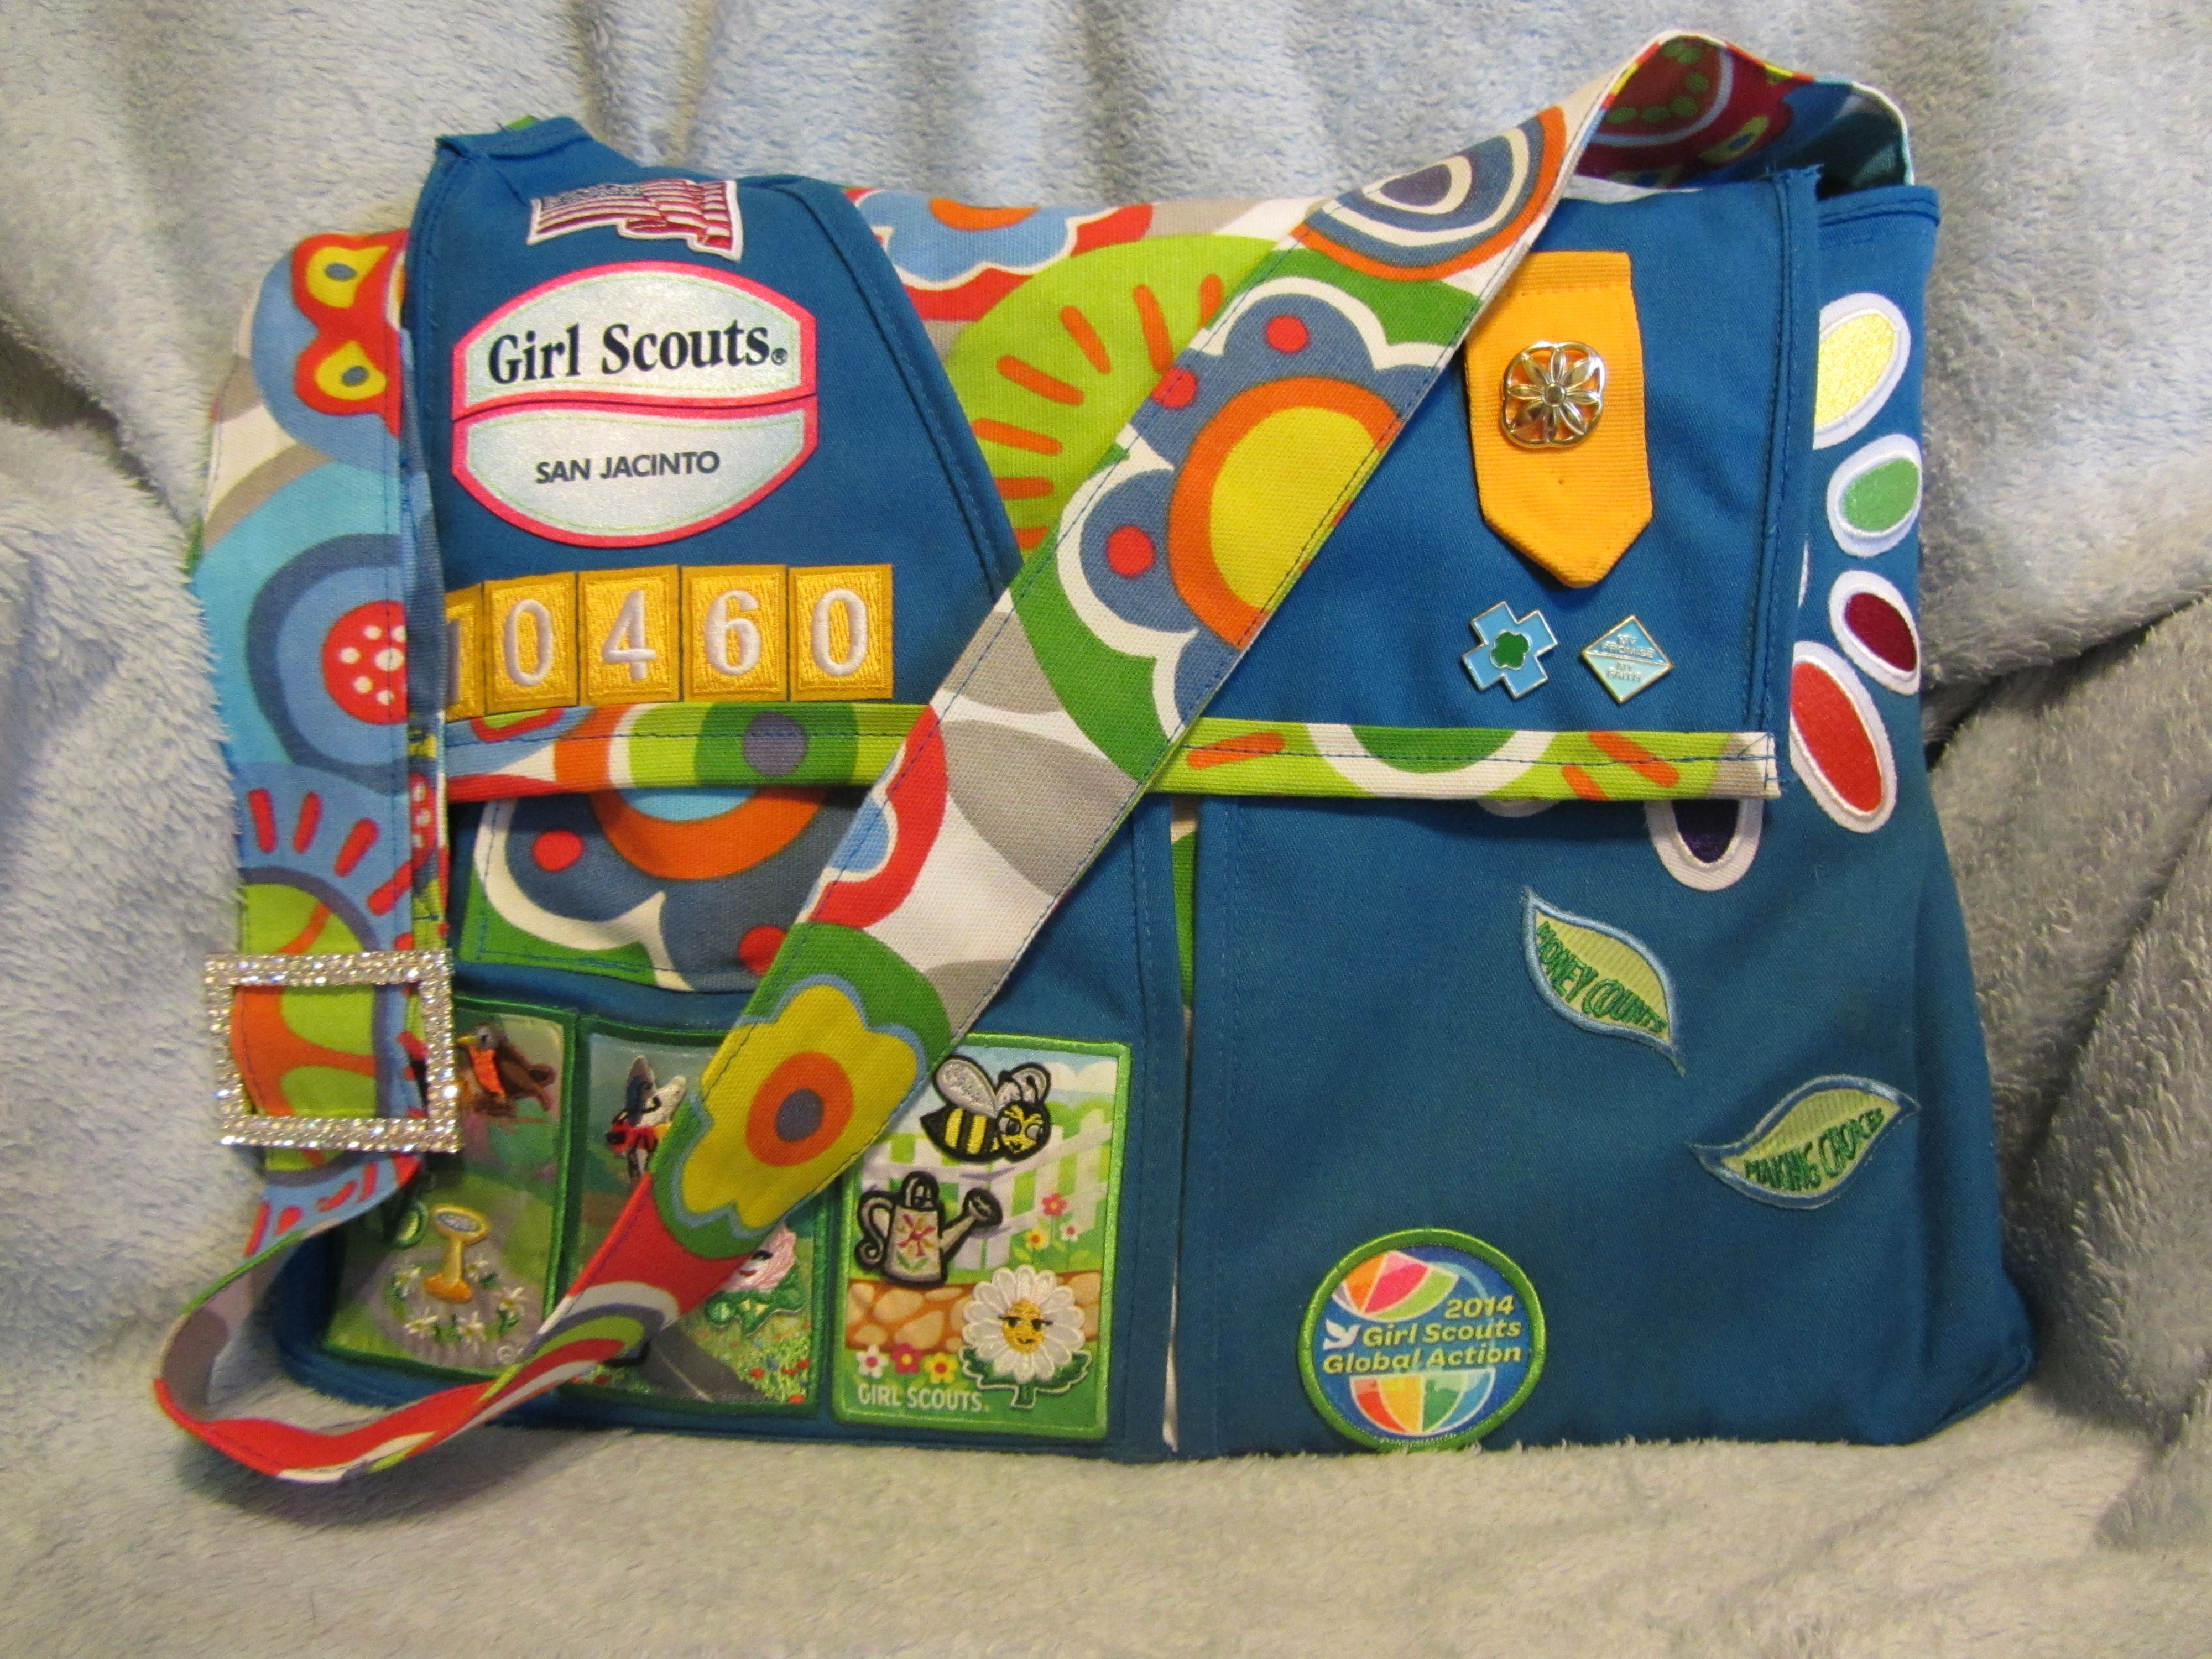 Girl scout scrapbook ideas - From Daisy Vest To Messenger Bag